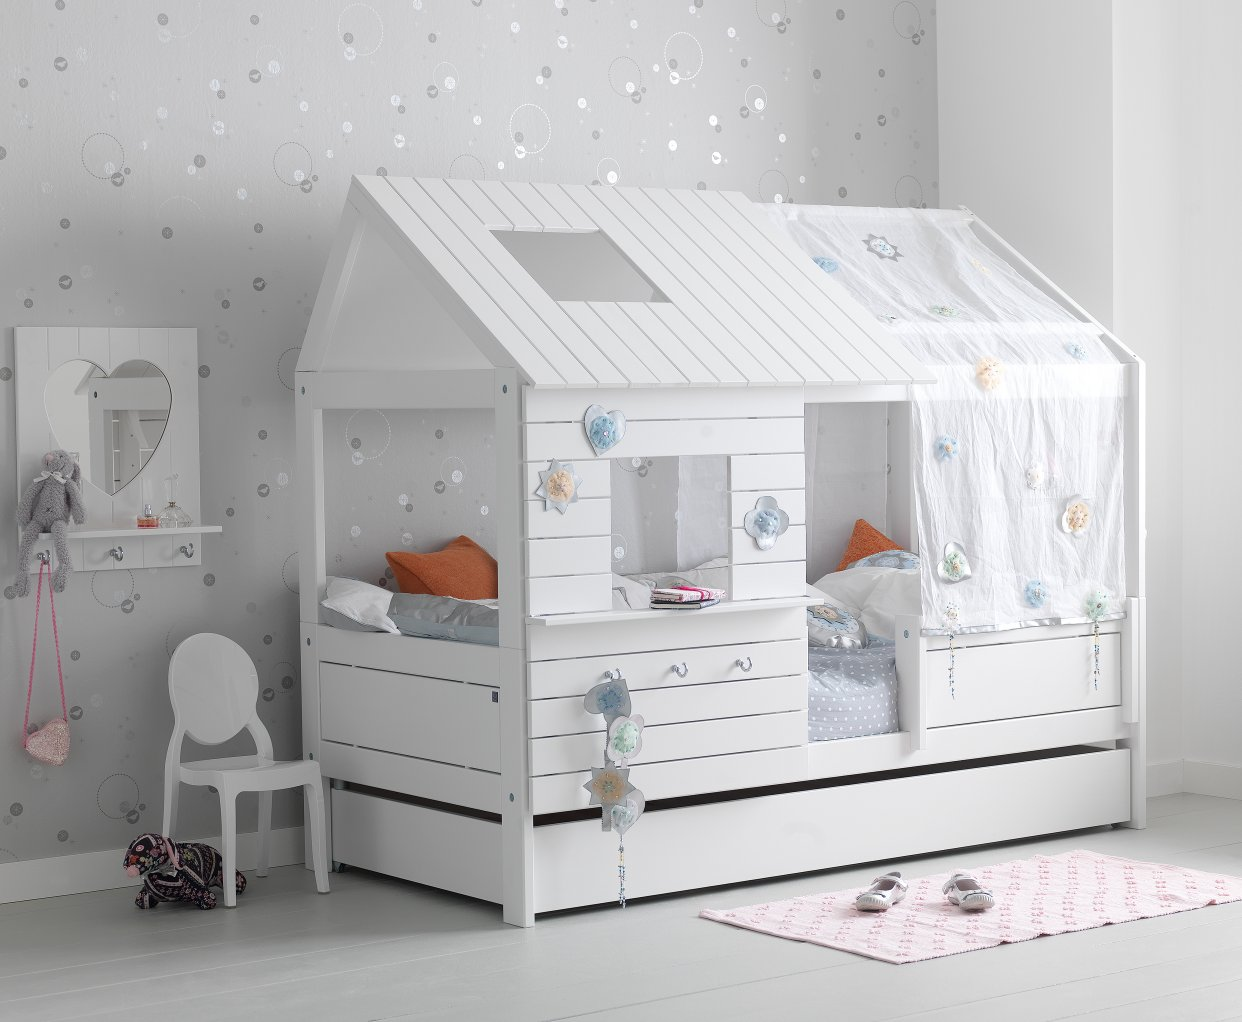 Hut bed solid wood white for children in s a - White and wood bedroom furniture ...